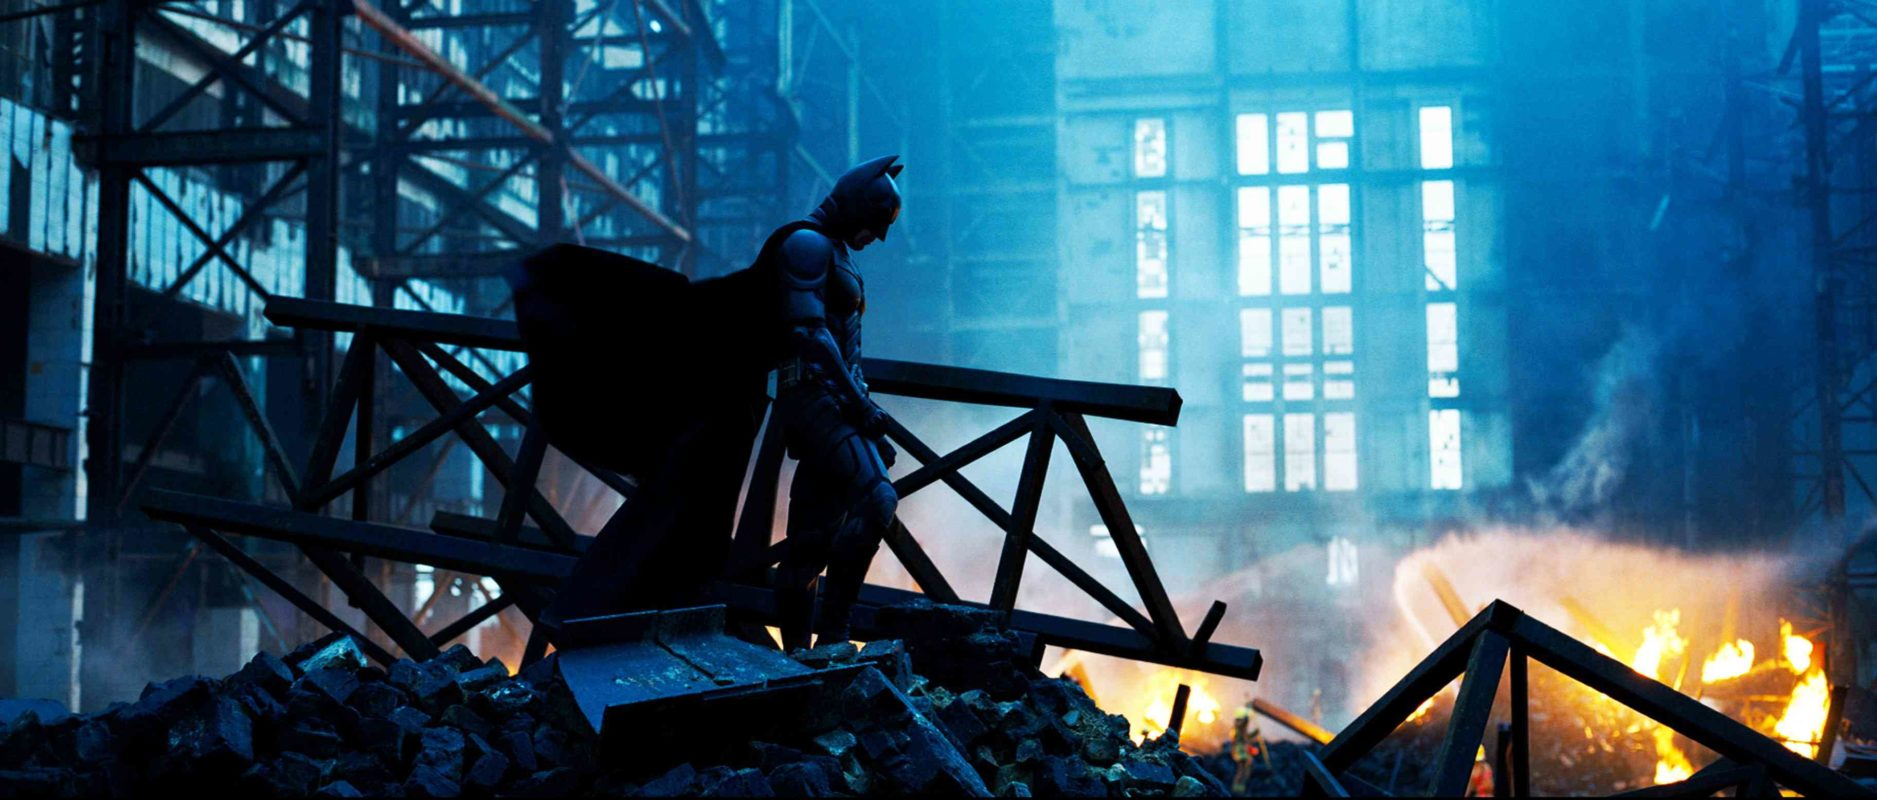 Batman in the Dark Knight